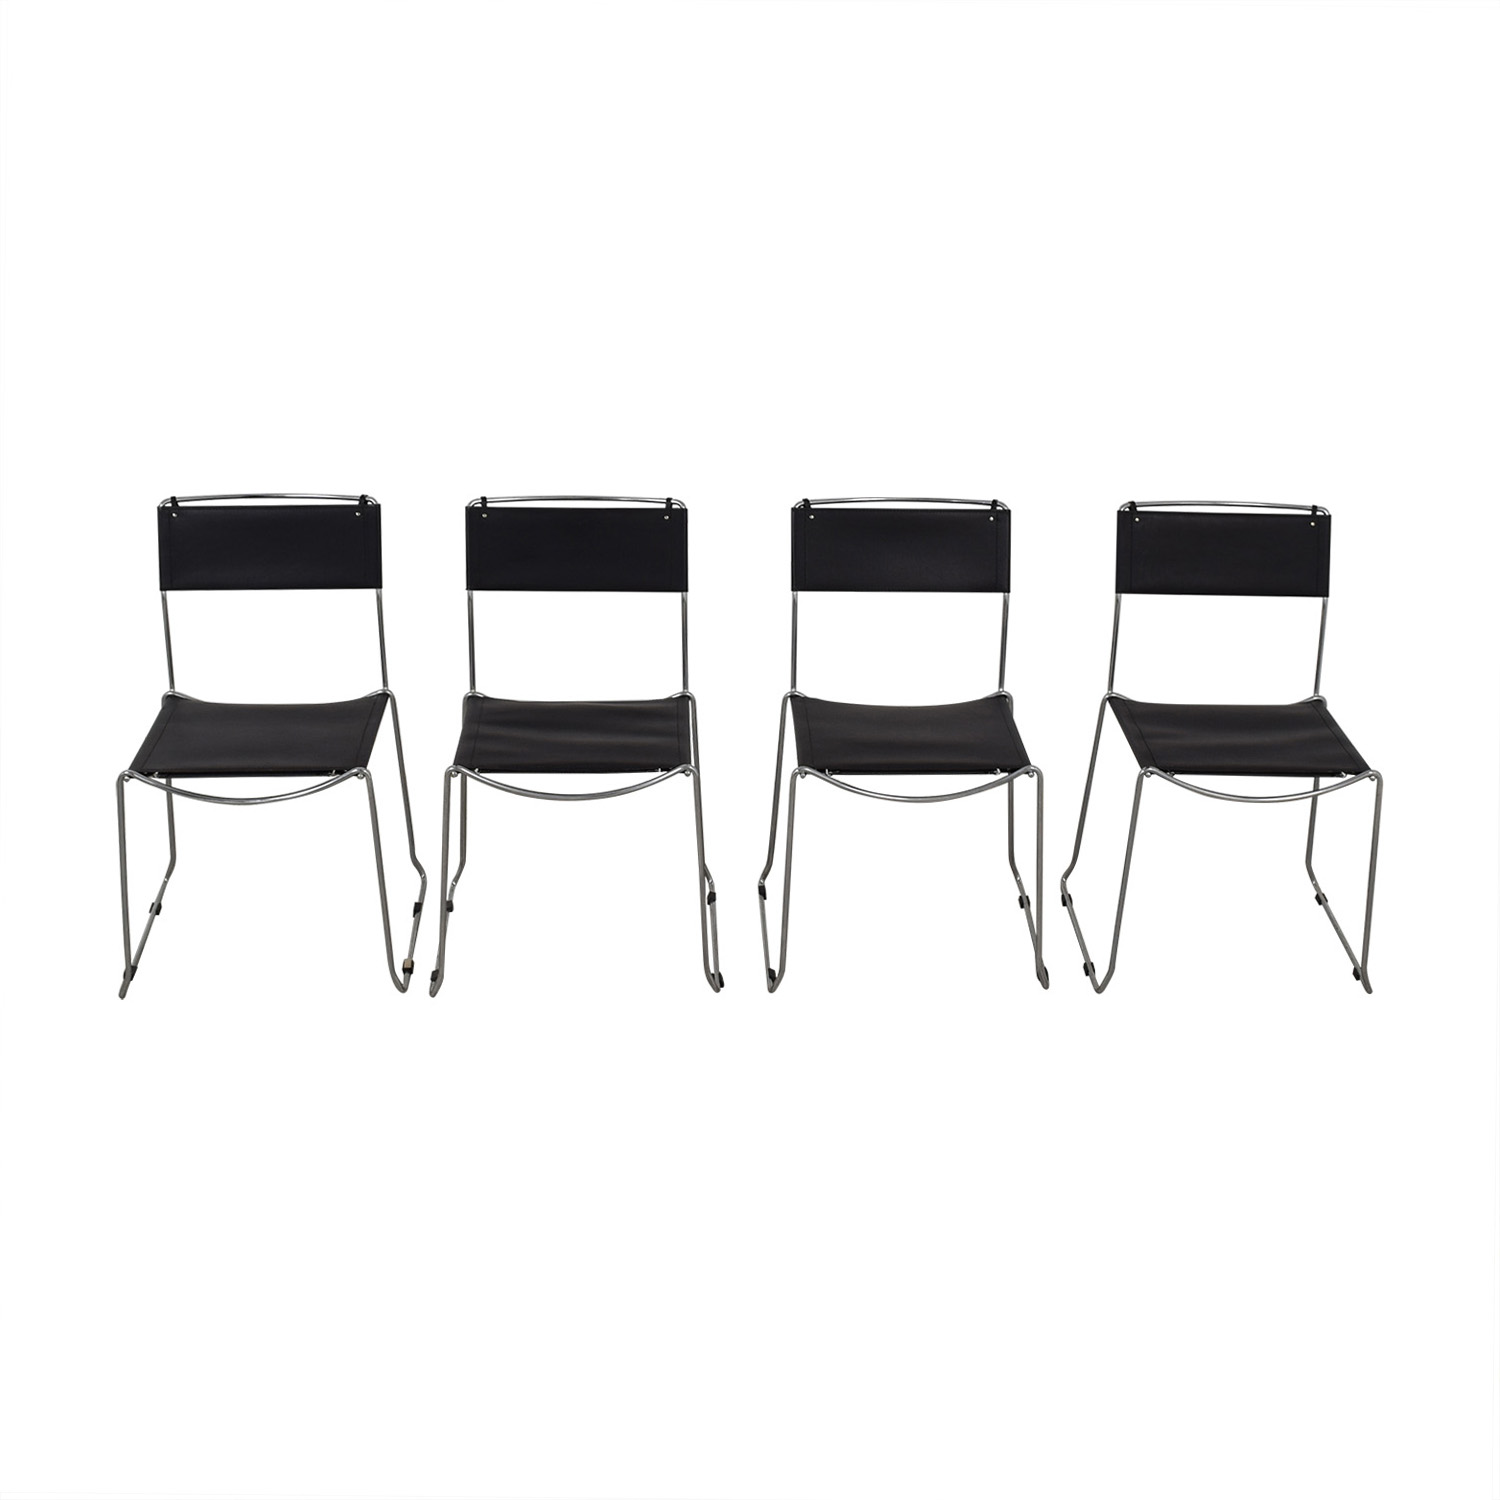 chair design within reach the comfortable store 57 off black stacking chairs